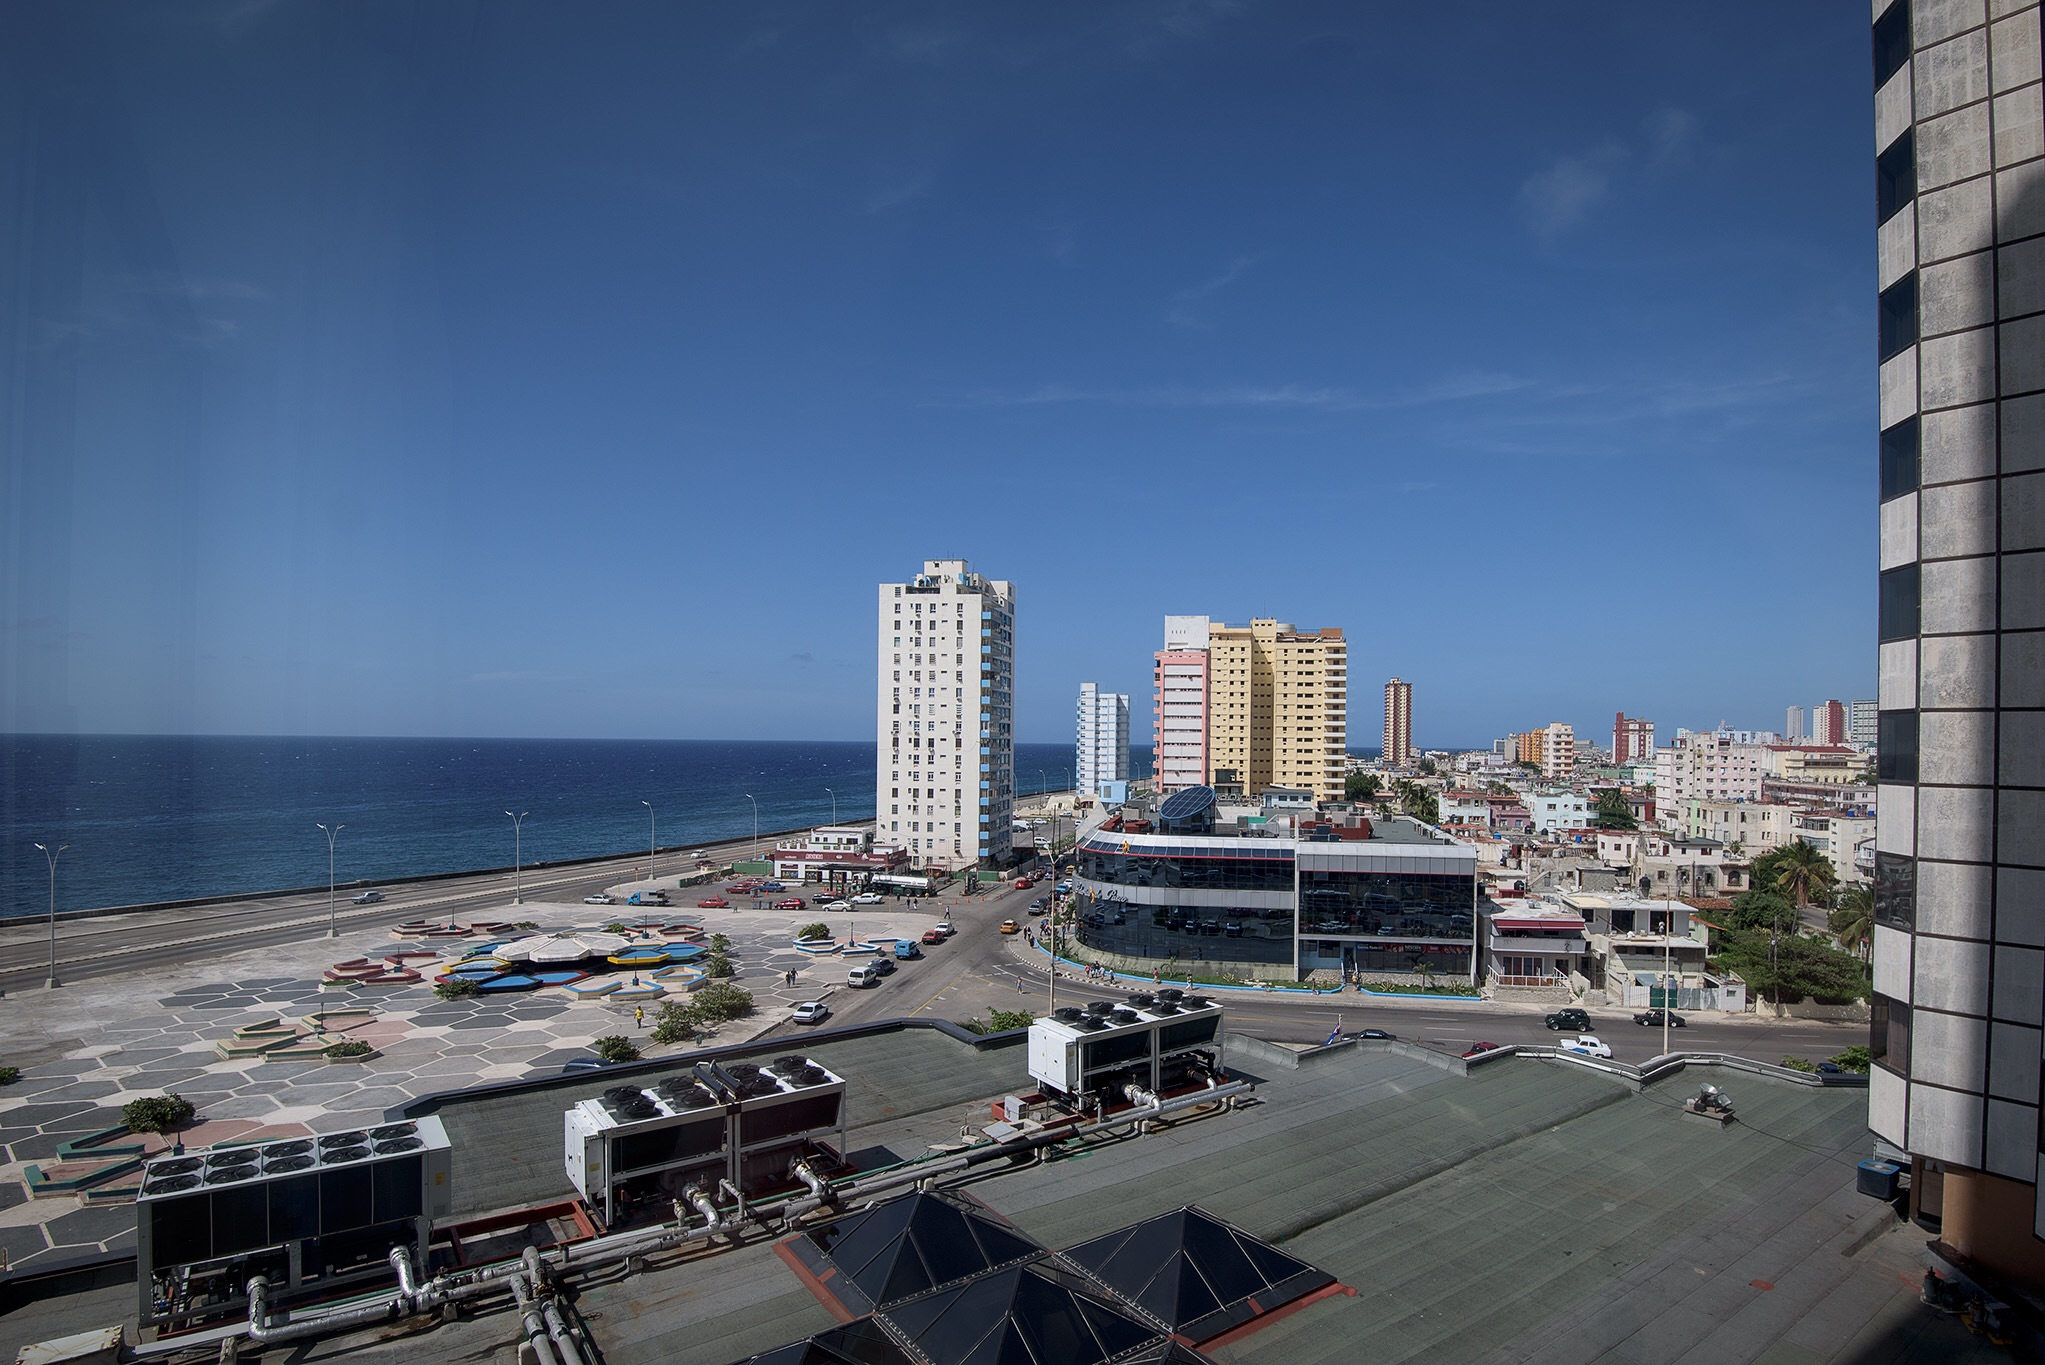 A view to the Malecon, with its major ring road around the city, with no traffic and virtually empty parking lots at 5 PM on a weekday.